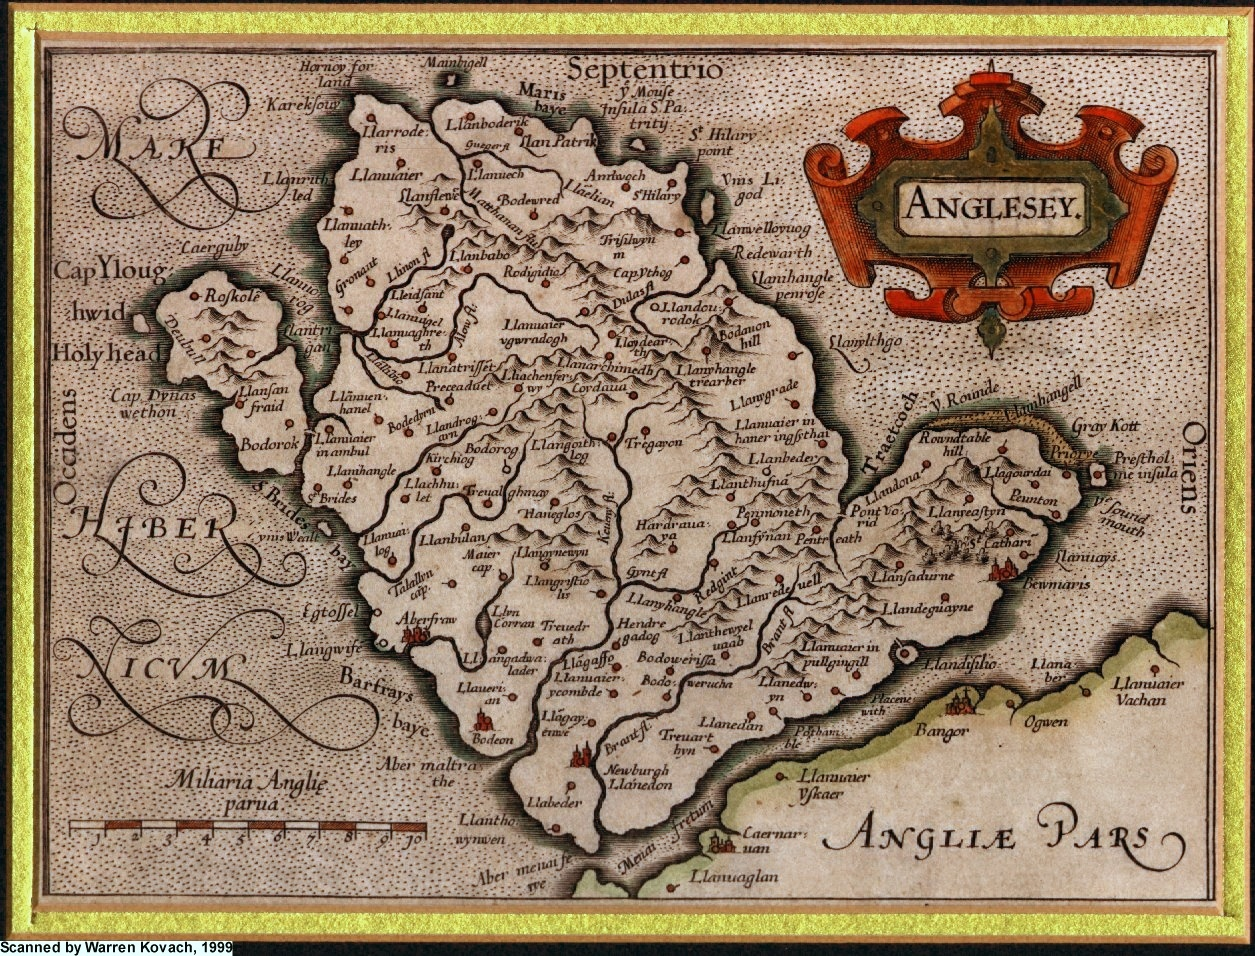 Anglesey Maps